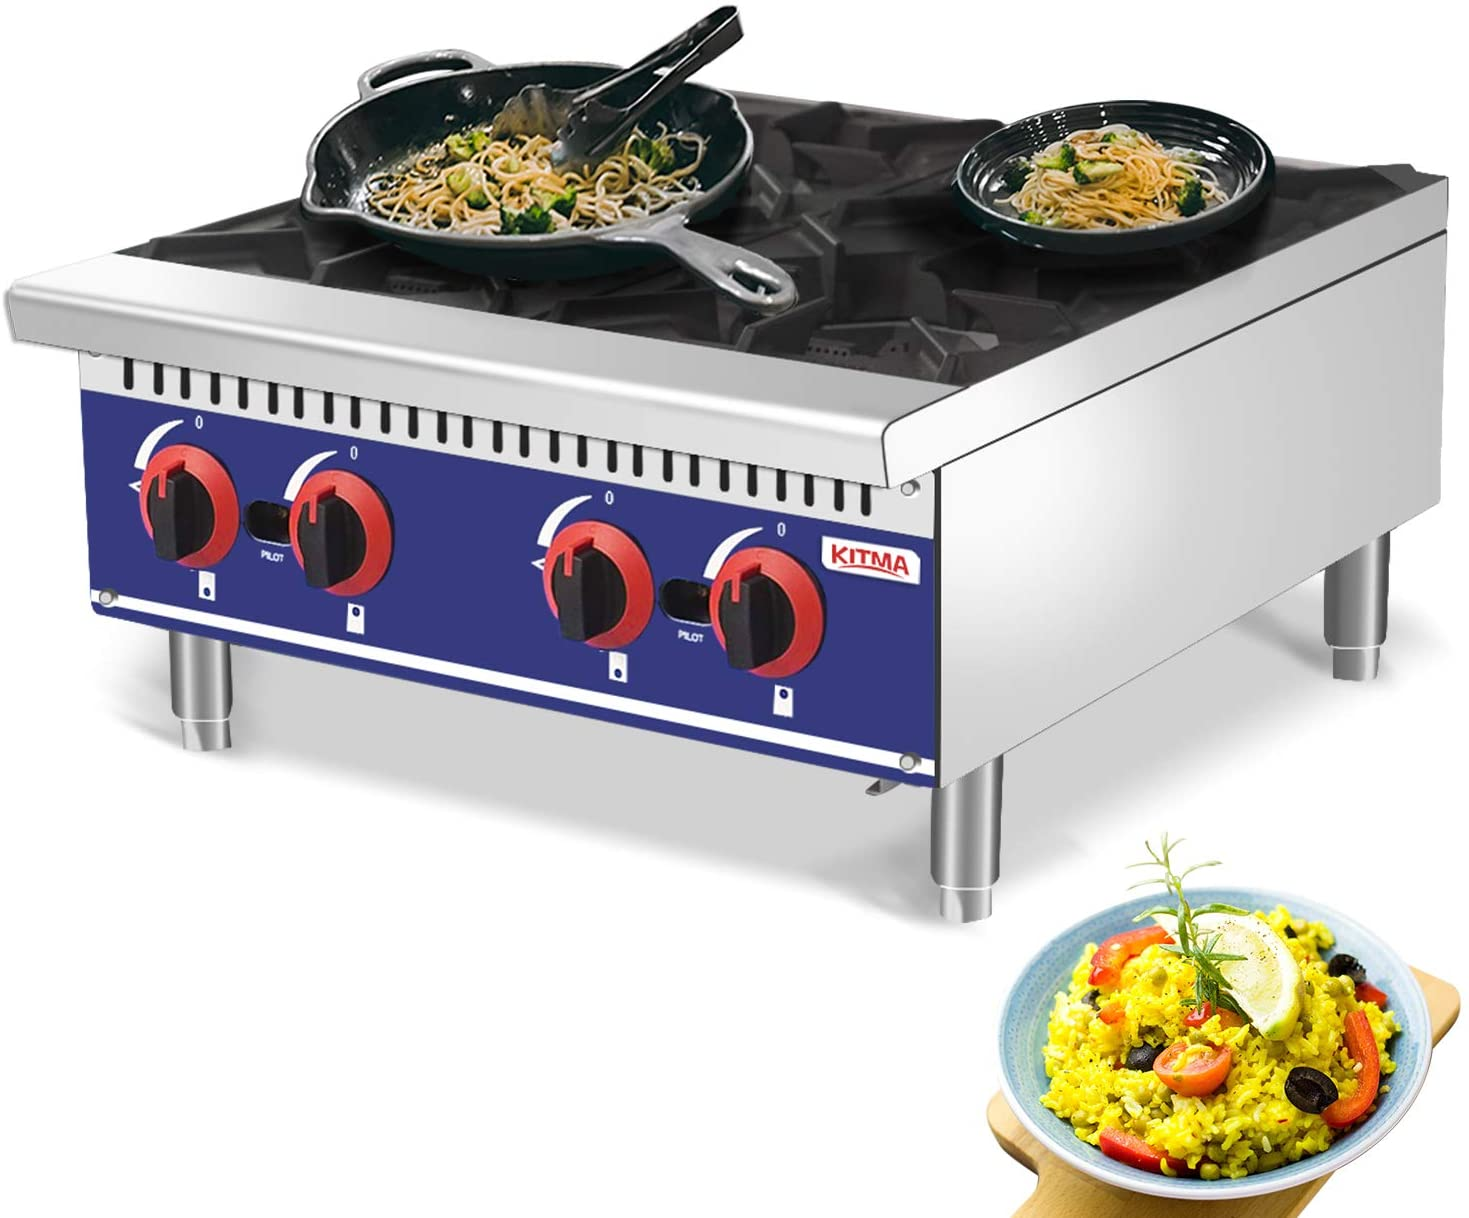 Commercial Countertop Hot Plate - KITMA 24 Inches 4 Burner Liquid Propane Range - Restaurant Equipment for Soups, Sauces